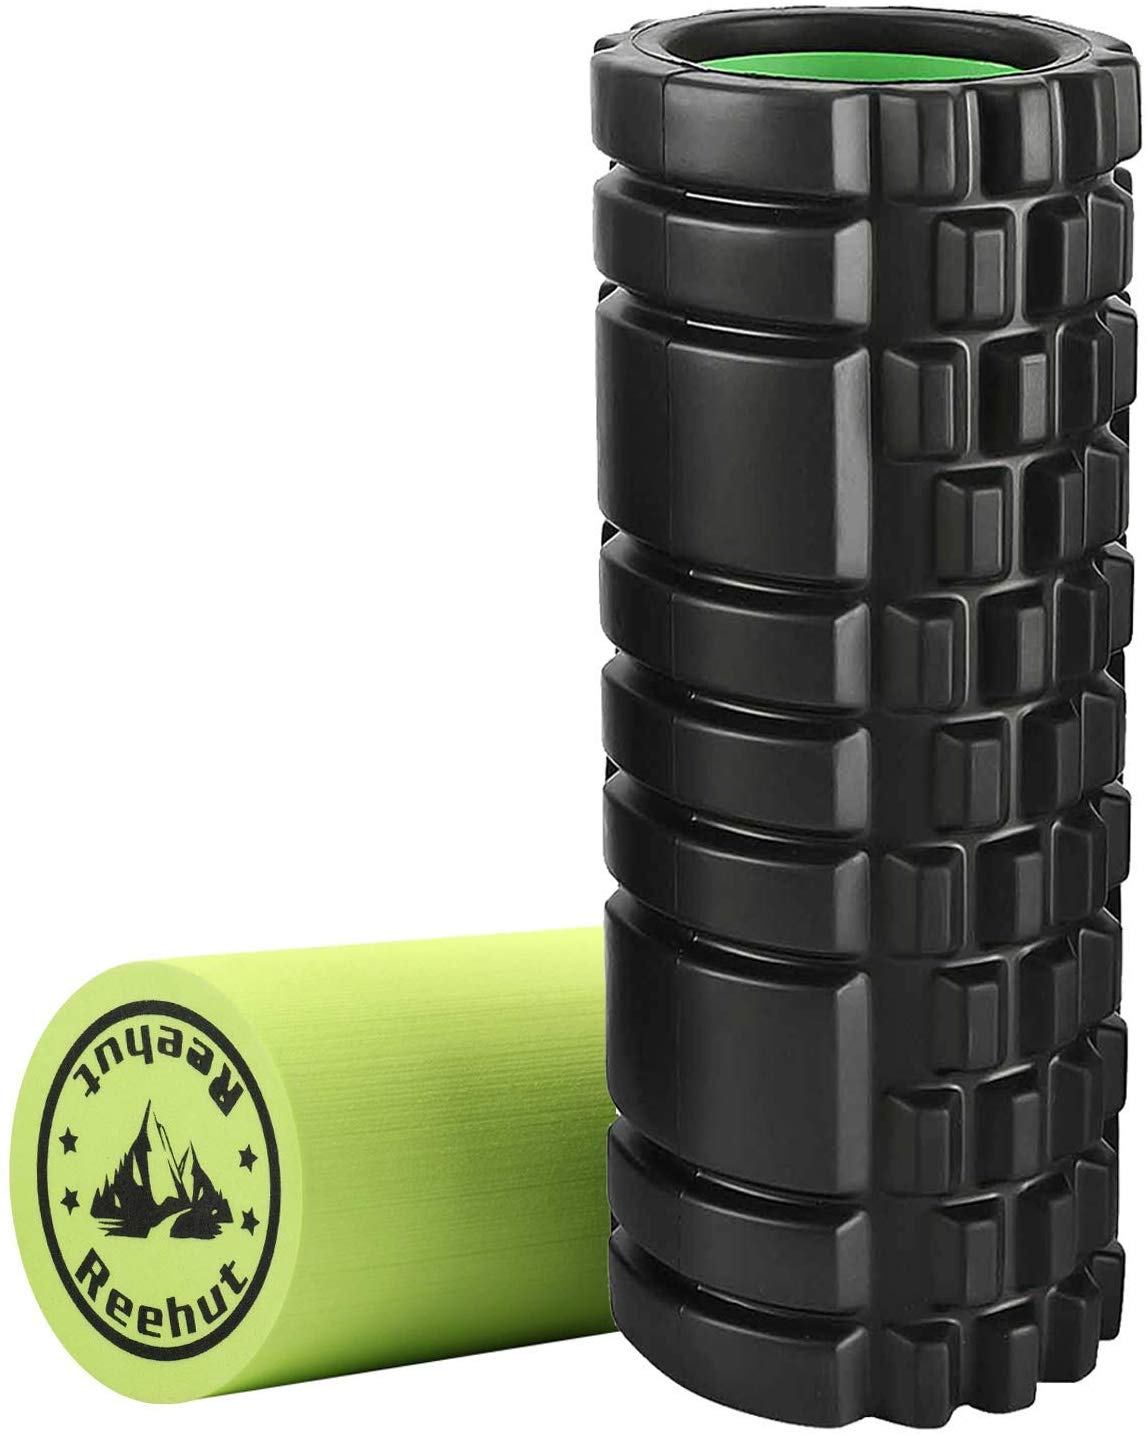 Roll into 2020 with these Top Rated Foam Rollers